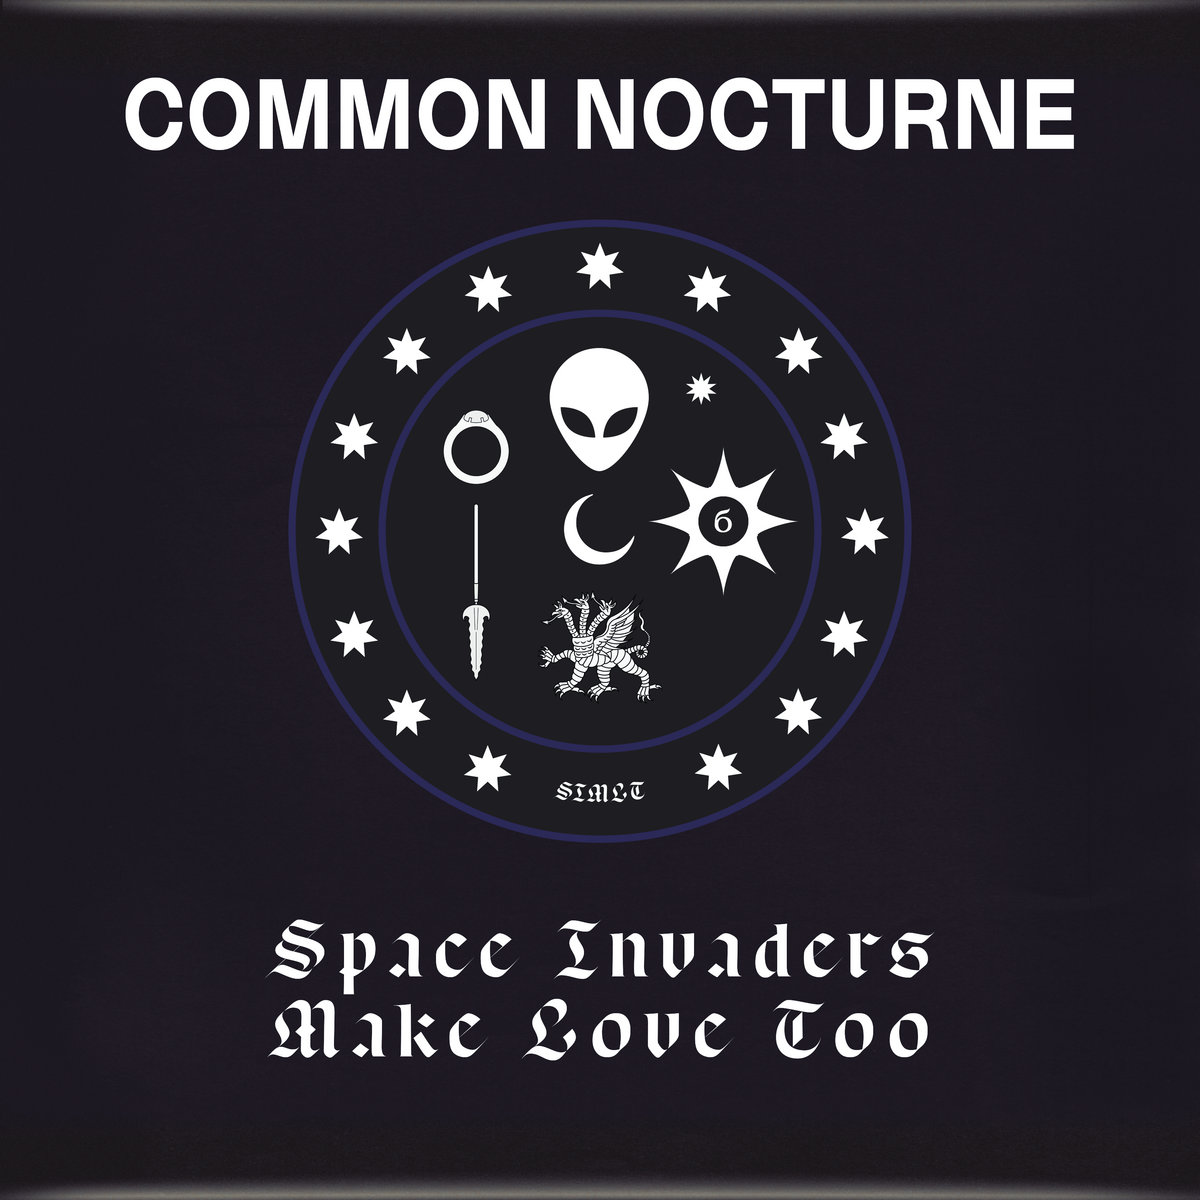 Space Invaders Make Love Too Common Nocturne